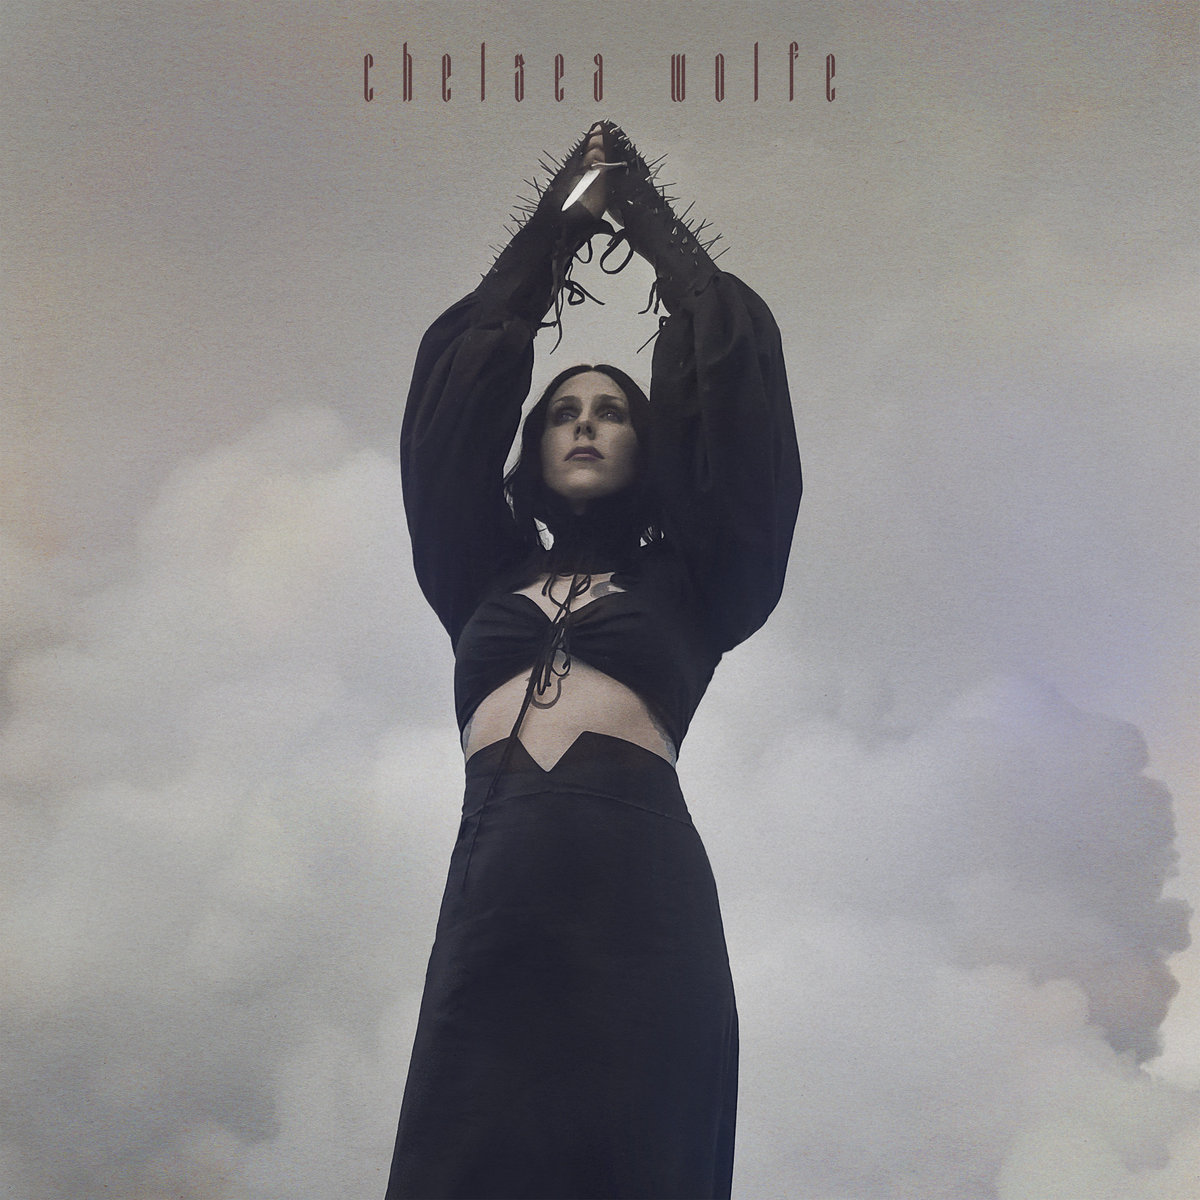 Image result for chelsea wolfe birth of violence